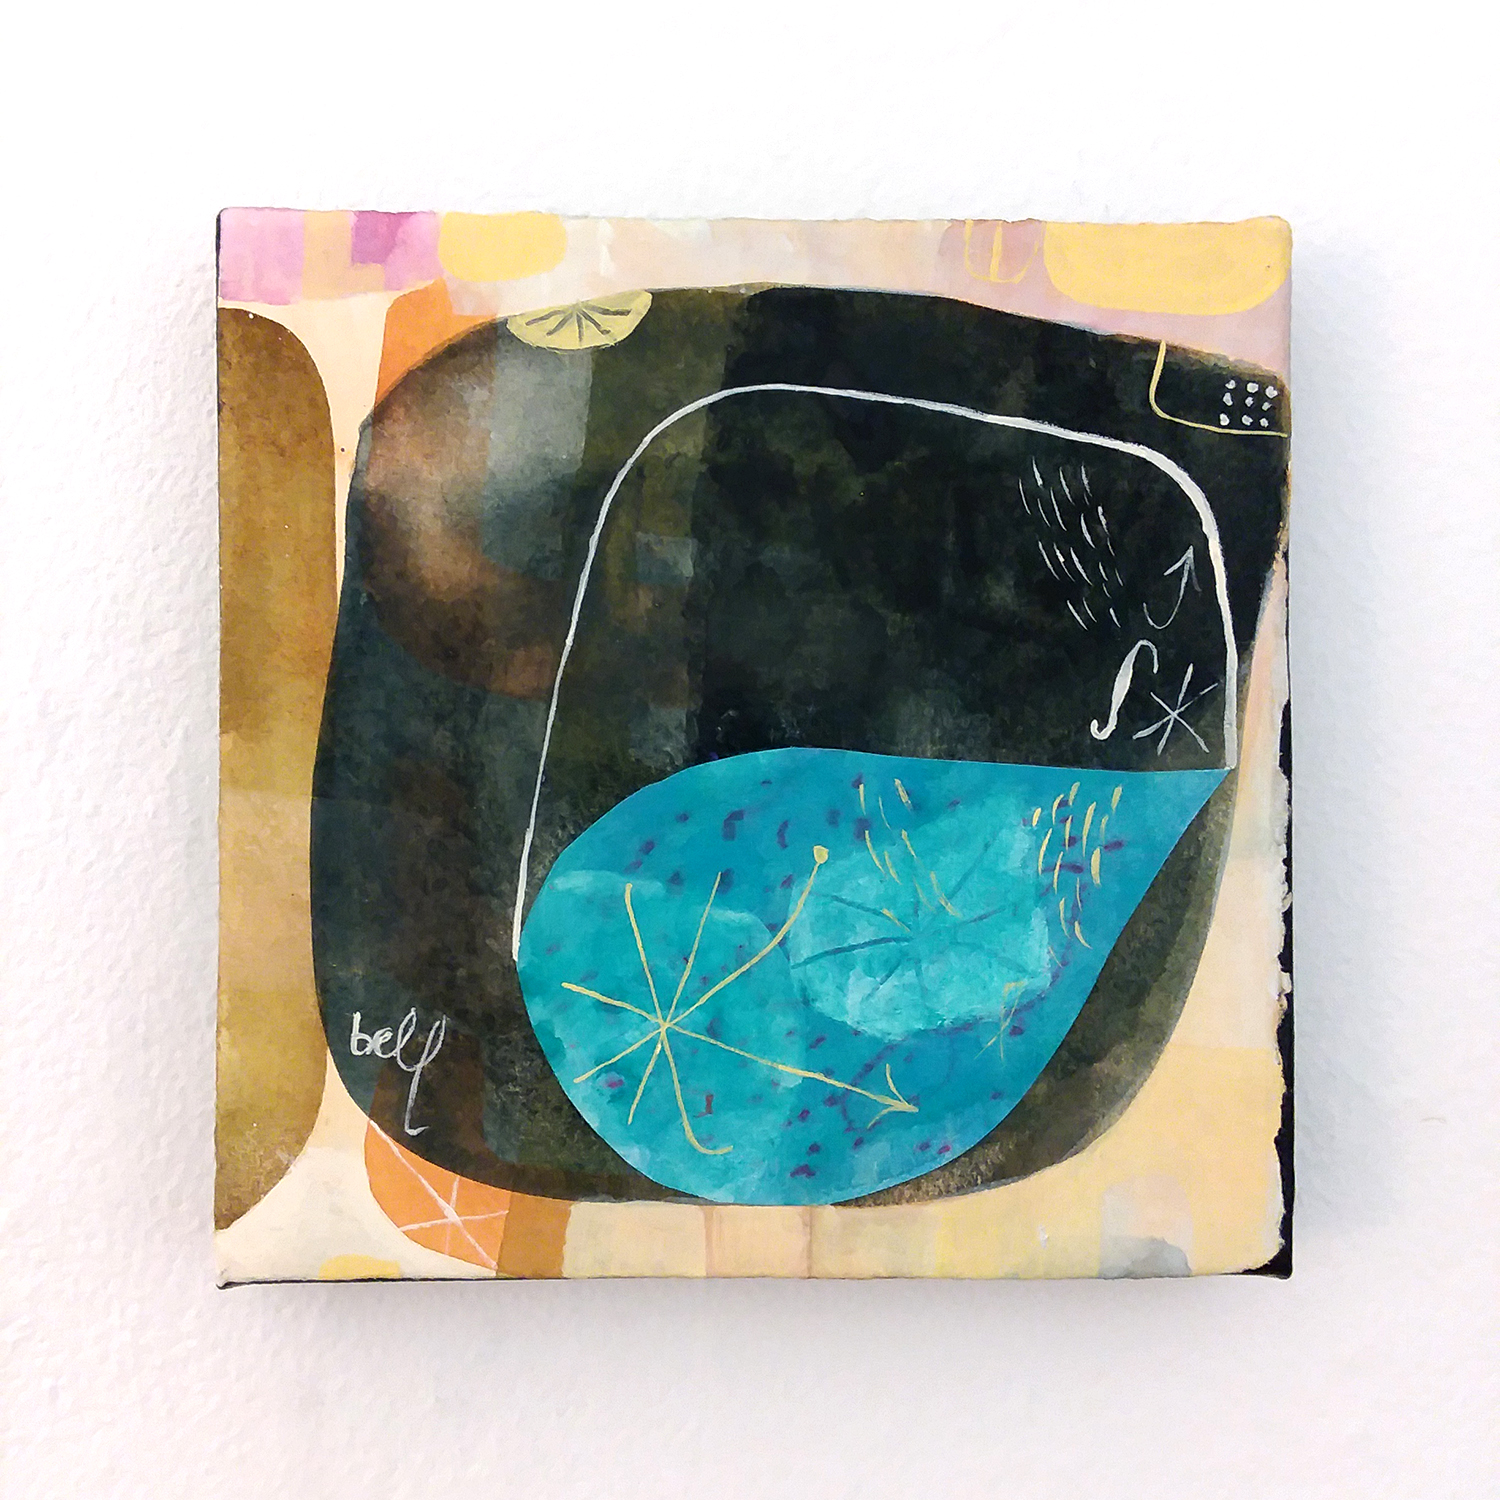 Aerodynamic Fishbowl Doubles as Public Aquarium, Westown   watercolor, gouache, and collage on paper mounted on canvas